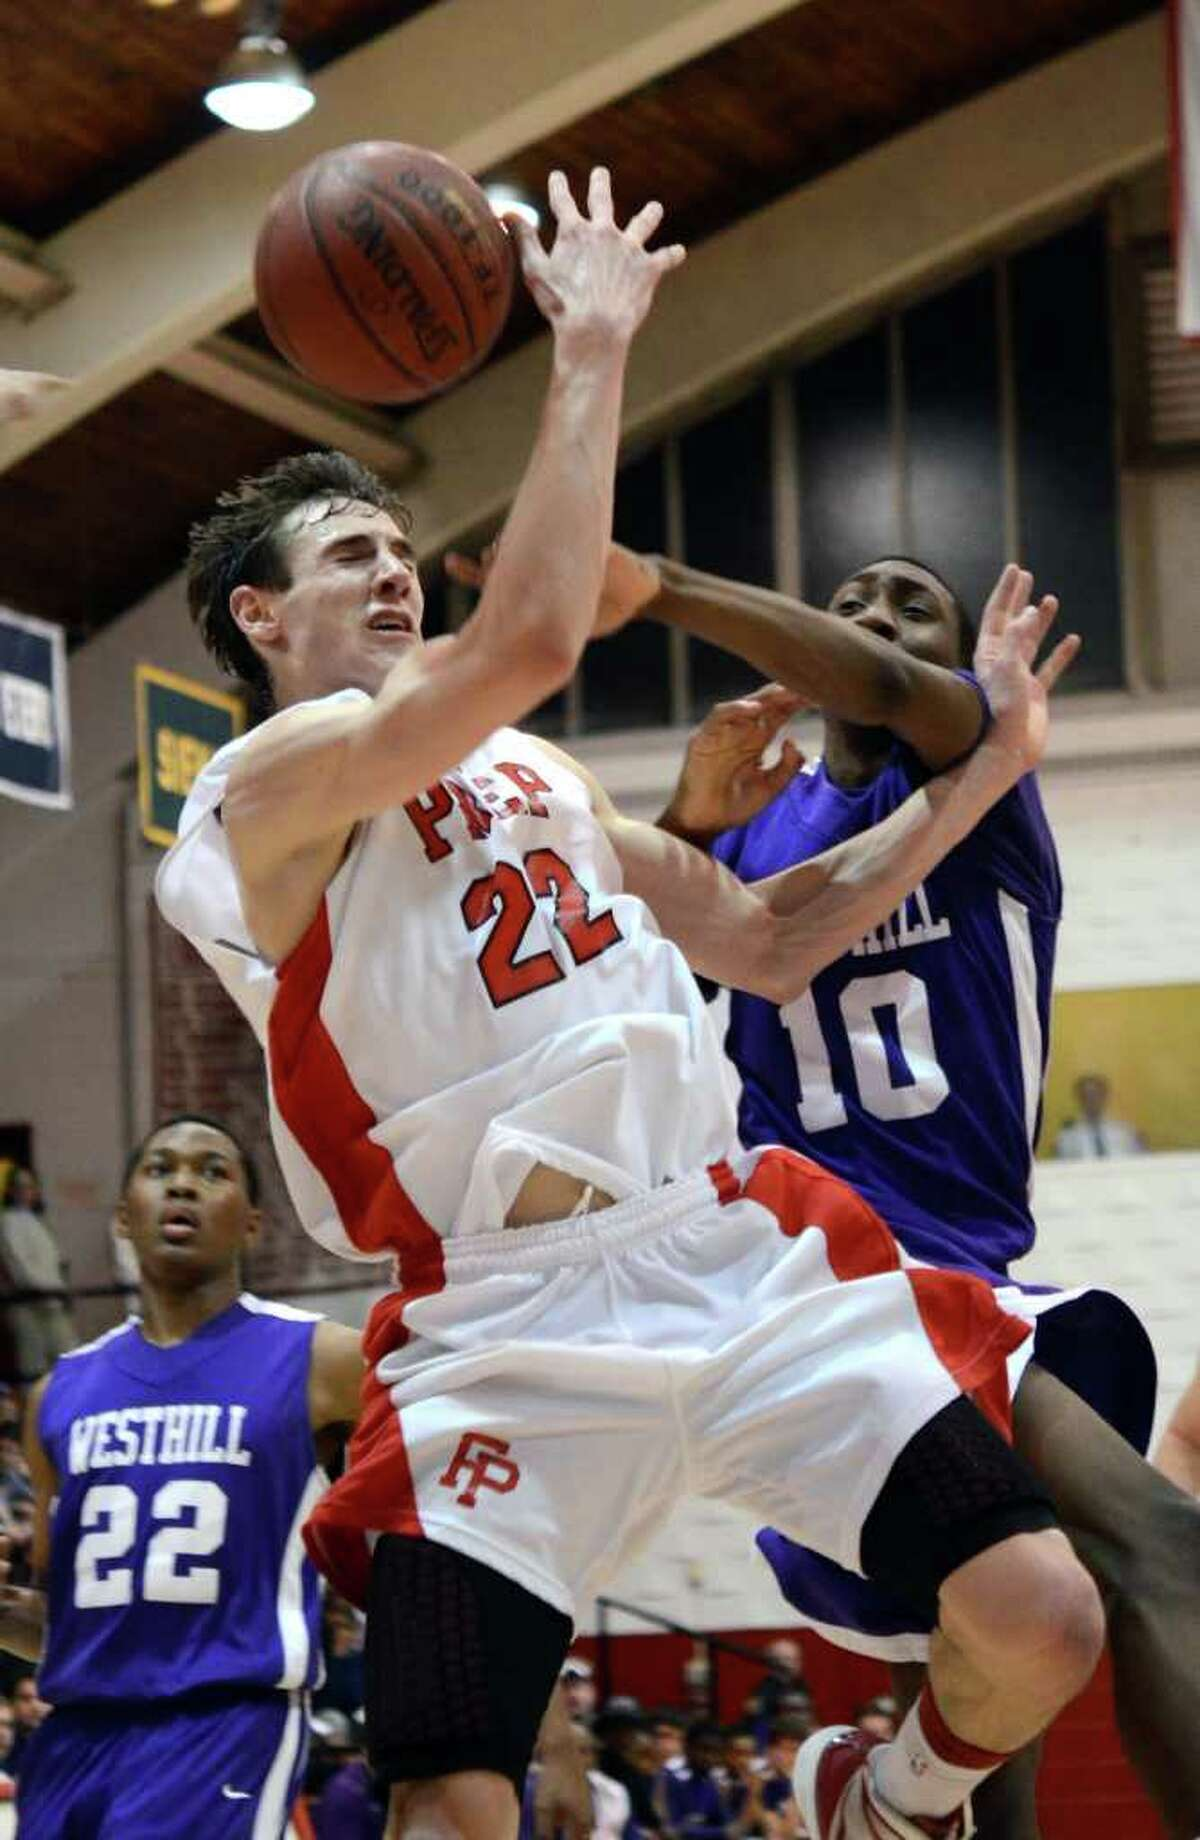 Westhill's Mark Edwin (10) fouls Fairfield Prep's Terry Tarpey (22) during the second round of the Class LL boys basketball state tournament at Fairfield University's Alumni Hall on Thursday, Mar. 8, 2012.